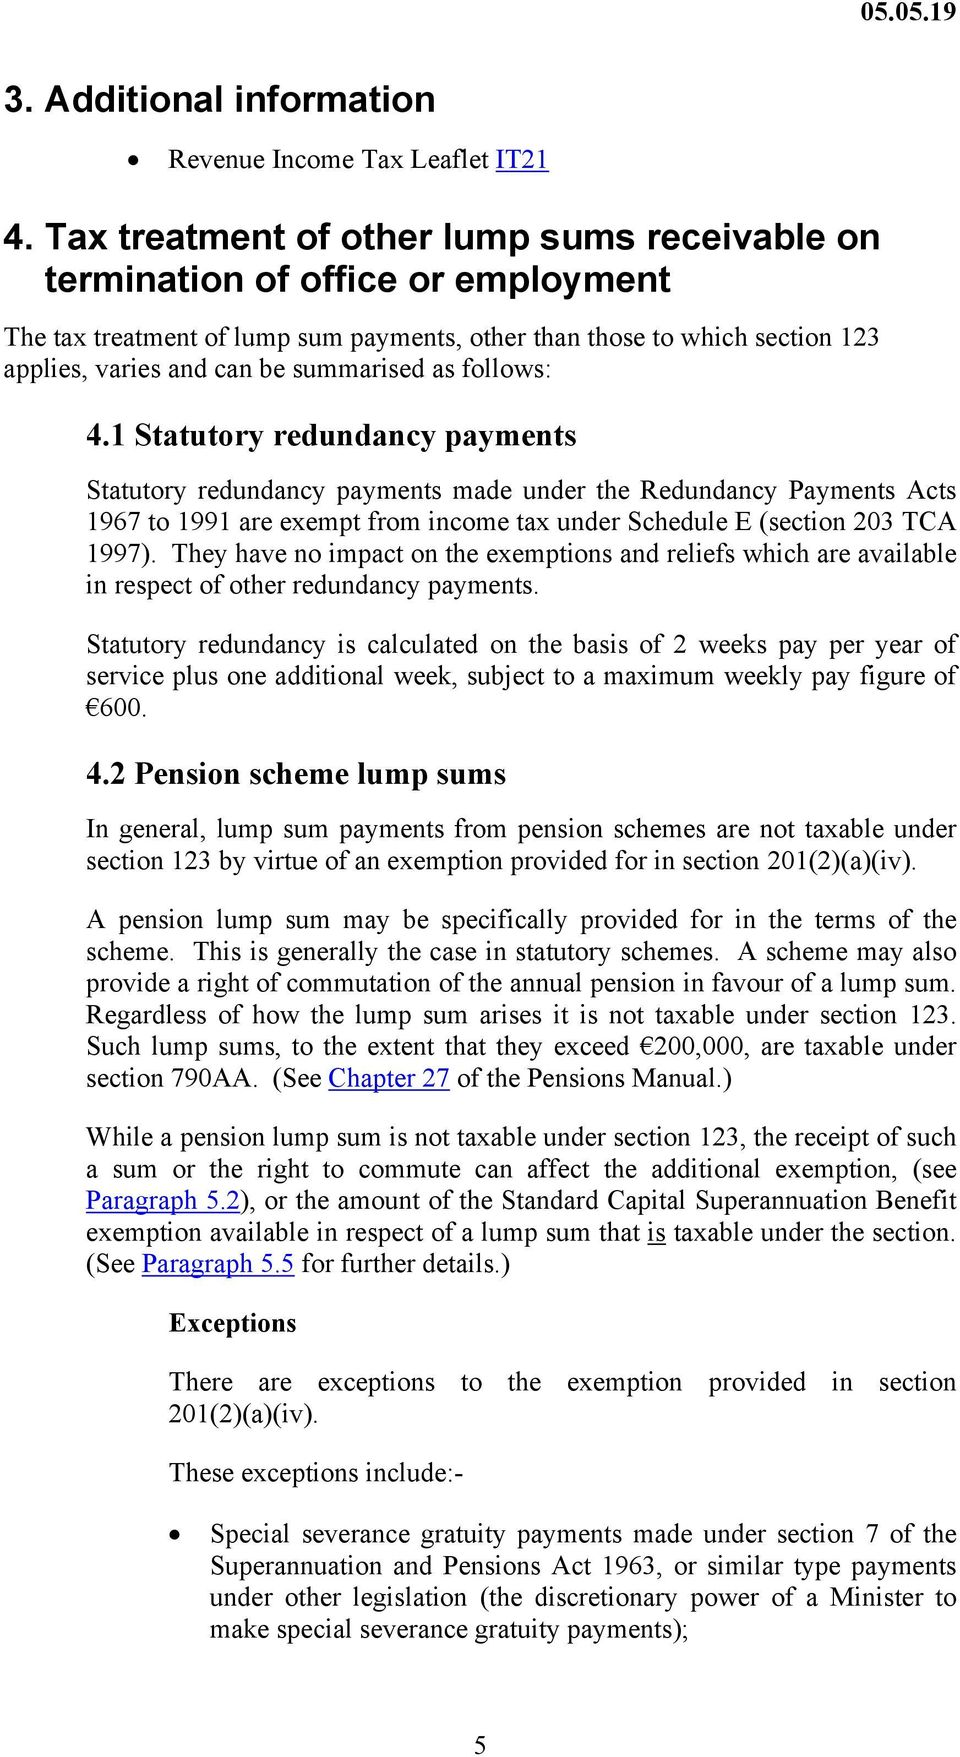 as follows: 4.1 Statutory redundancy payments Statutory redundancy payments made under the Redundancy Payments Acts 1967 to 1991 are exempt from income tax under Schedule E (section 203 TCA 1997).